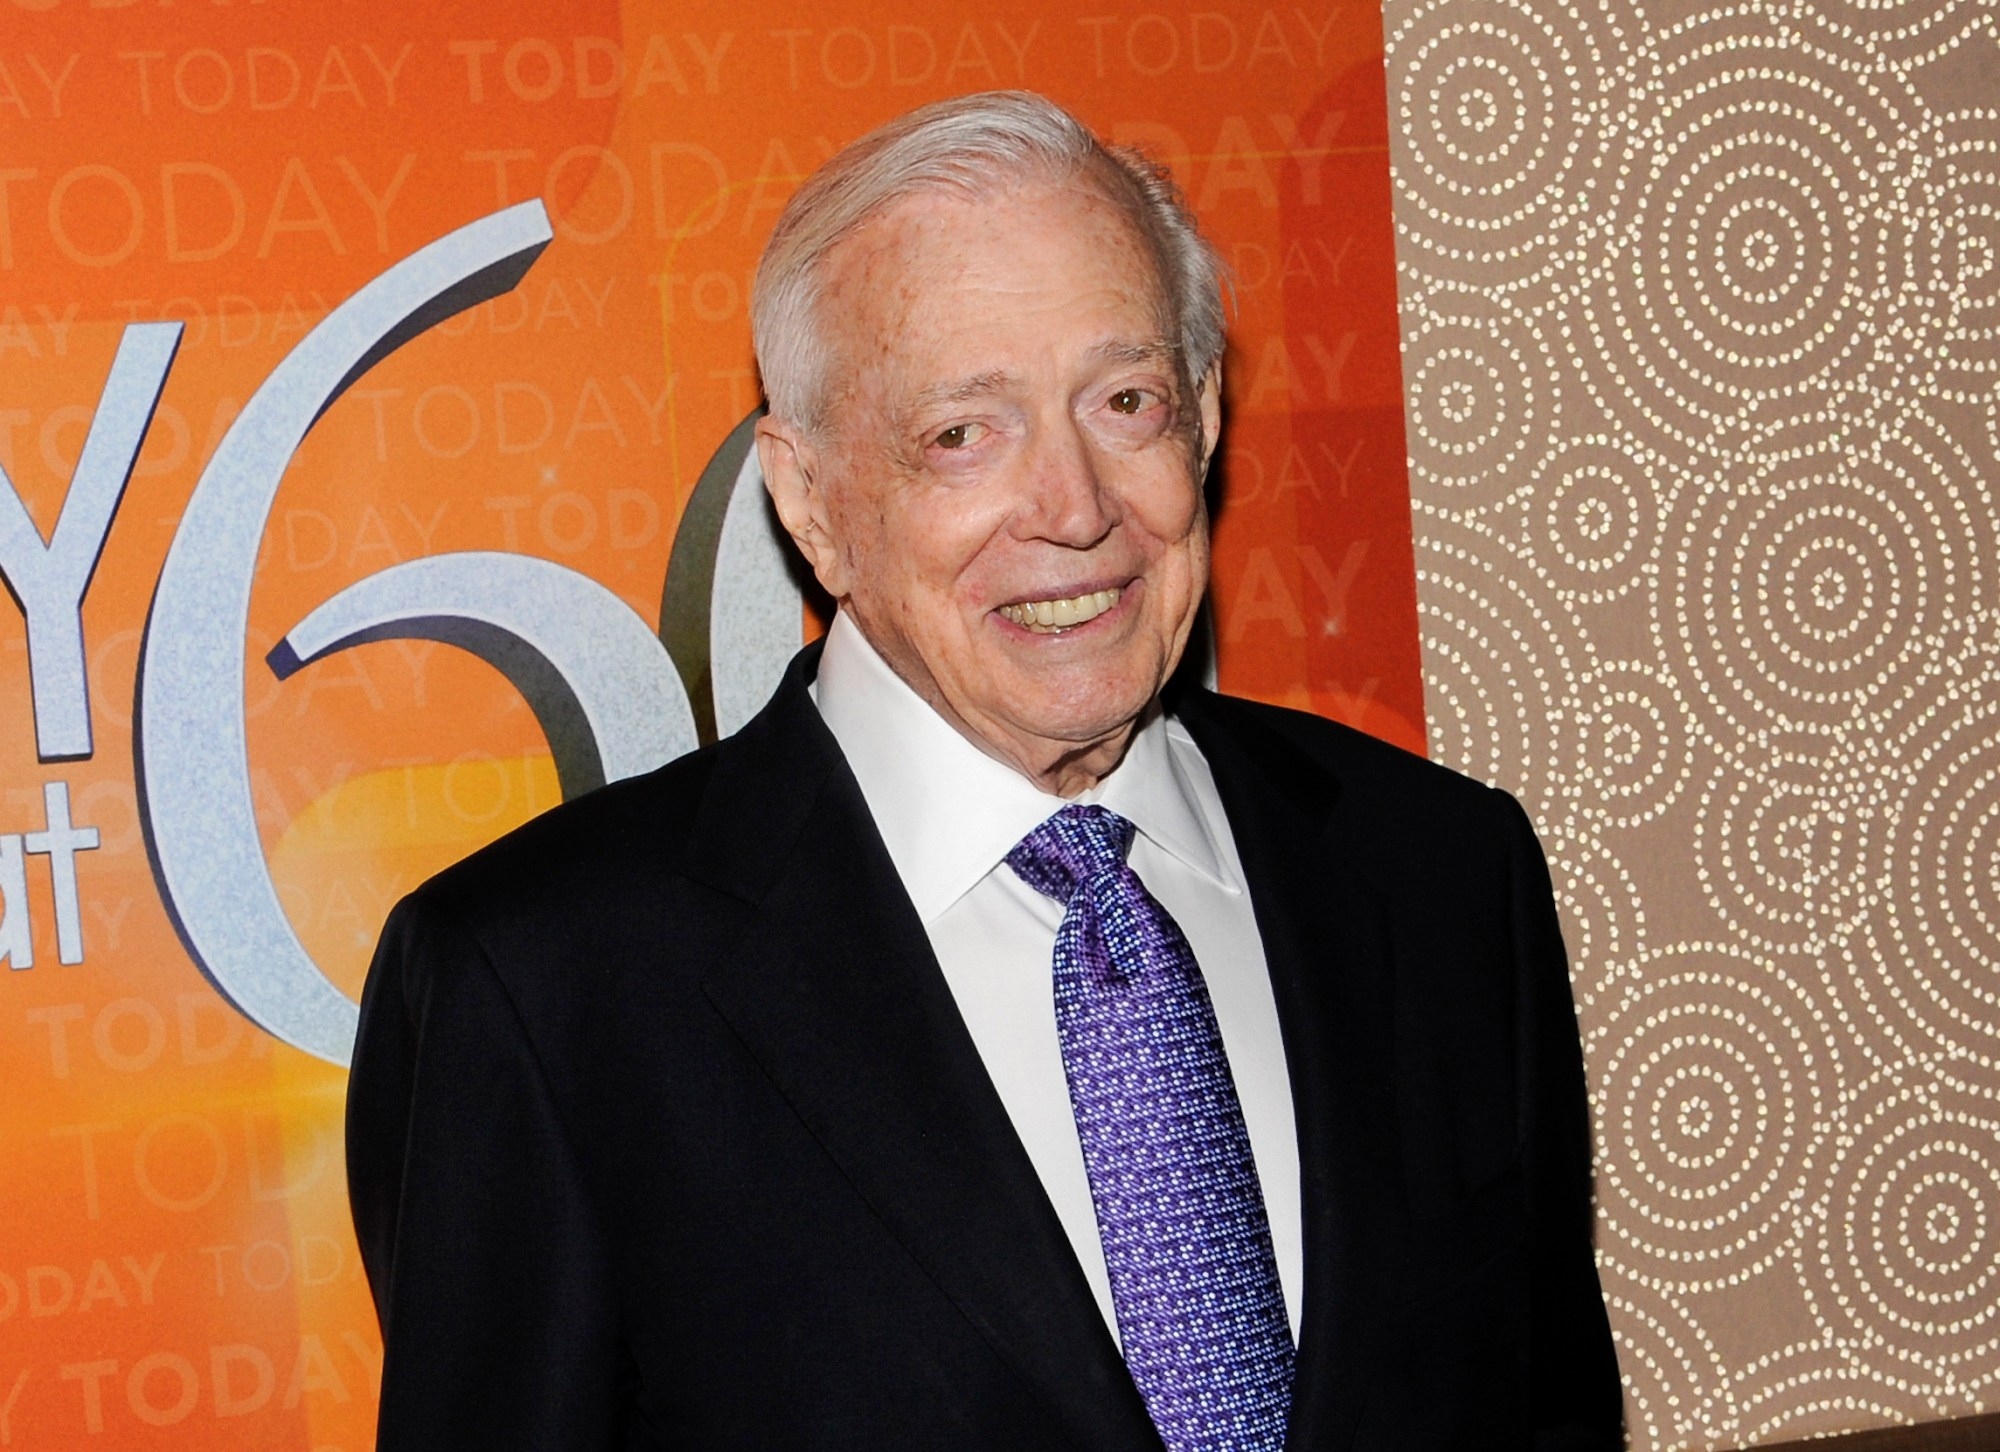 """This Jan. 12, 2012 file photo shows Hugh Downs at the """"Today"""" show 60th anniversary celebration in New York. (Evan Agostini/Associated Press)"""